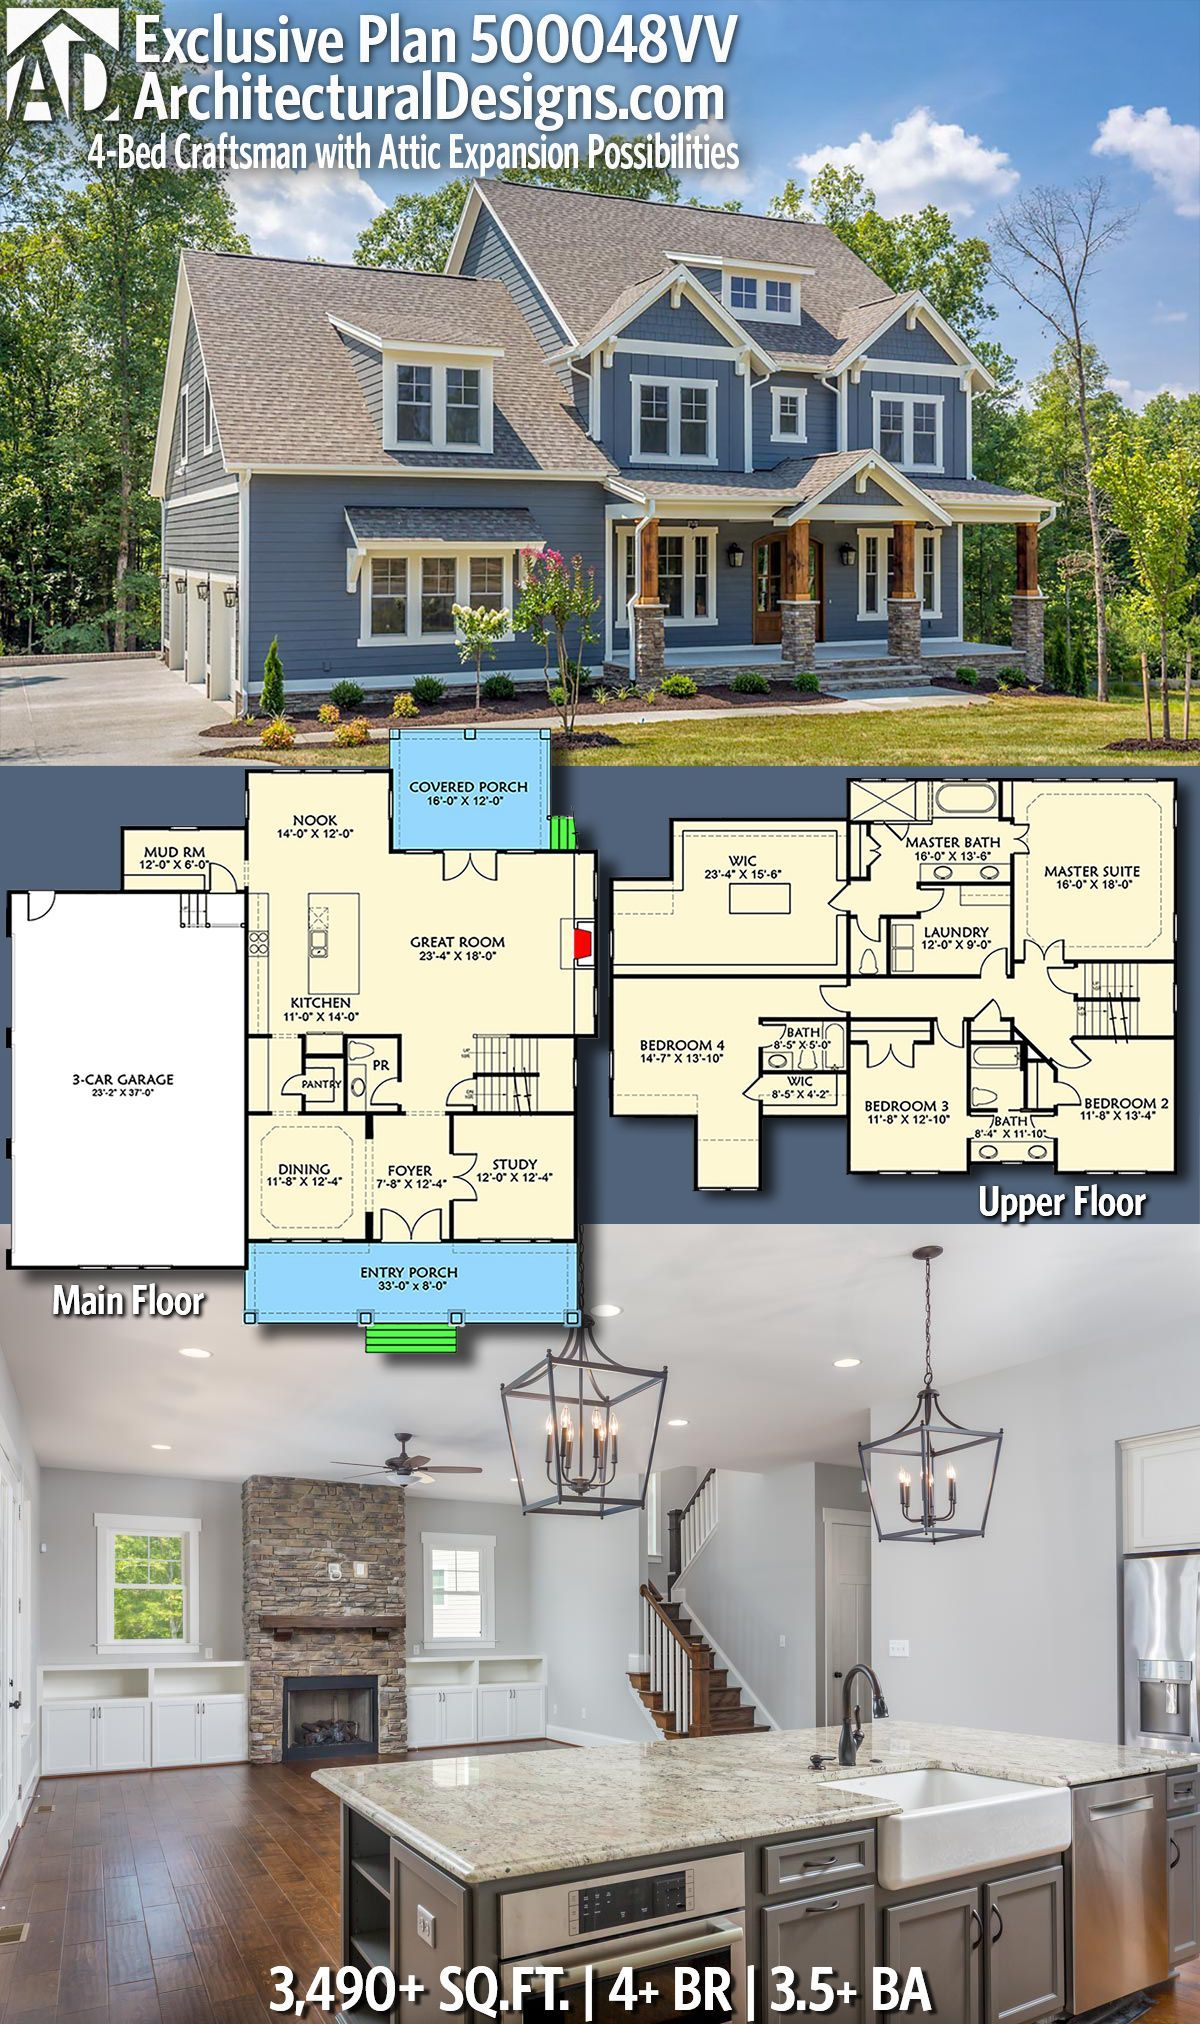 House Plan 500048vv Covered Porch To Screen Porch With Porch Above For Master Space Above Garage To Bonus S Craftsman House Plans Craftsman House House Plans